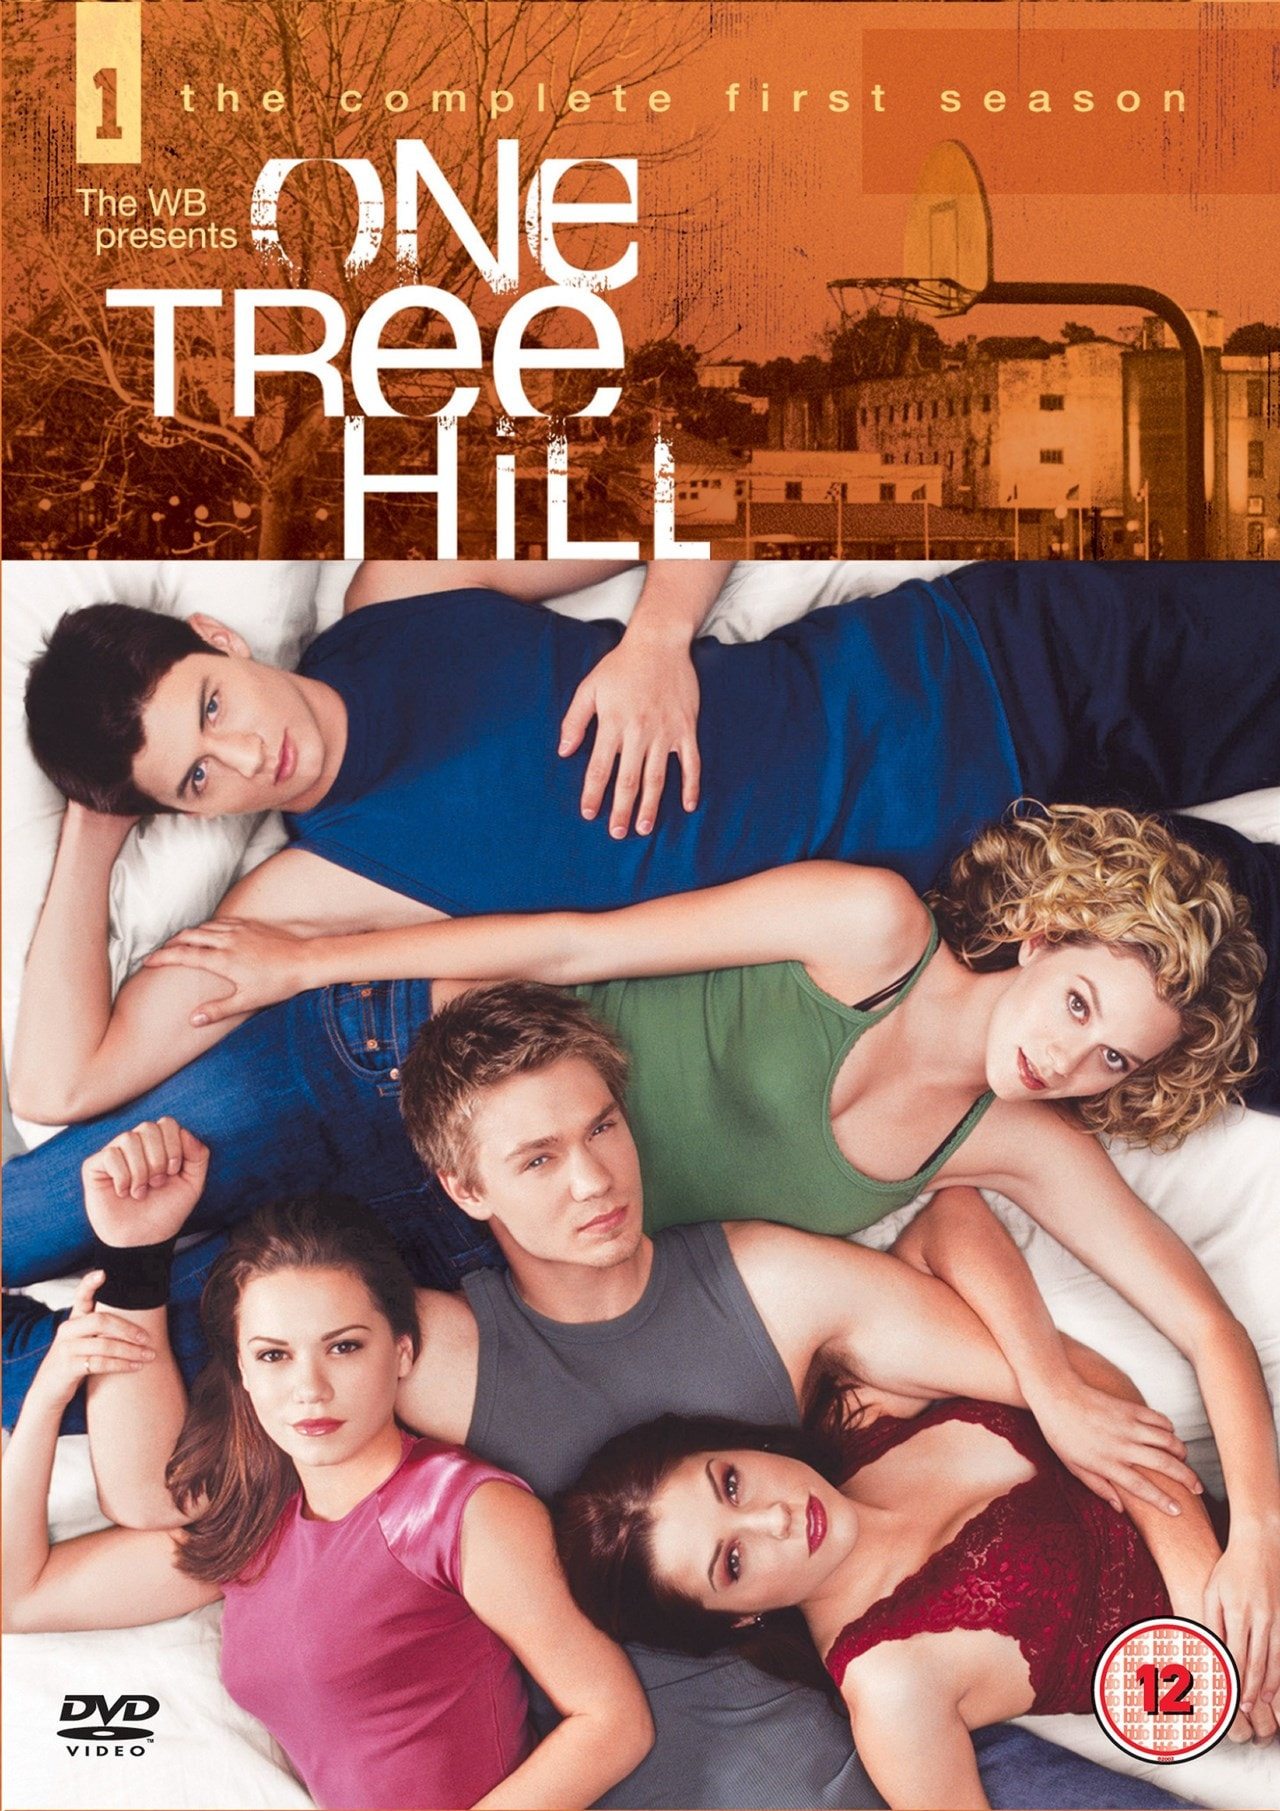 One Tree Hill: The Complete First Season - 1